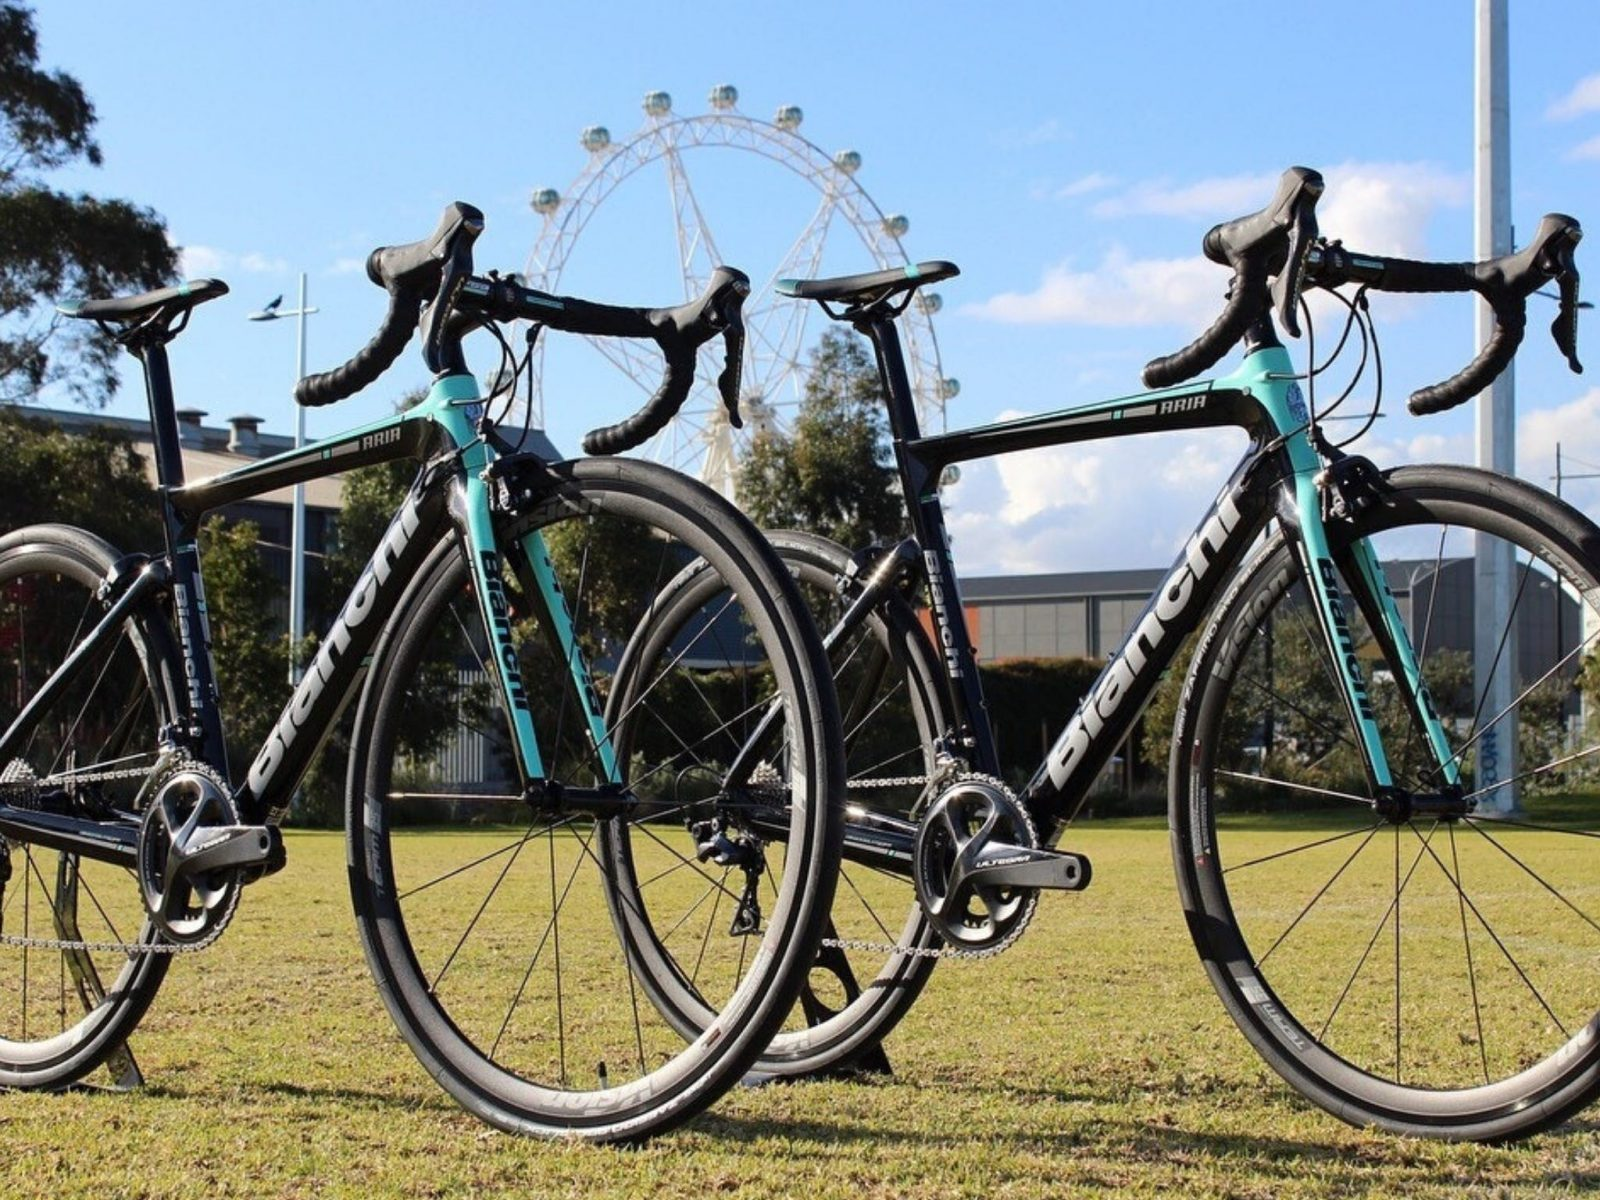 road bike rental melbourne guided tour melbourne bianchi rent guide hire